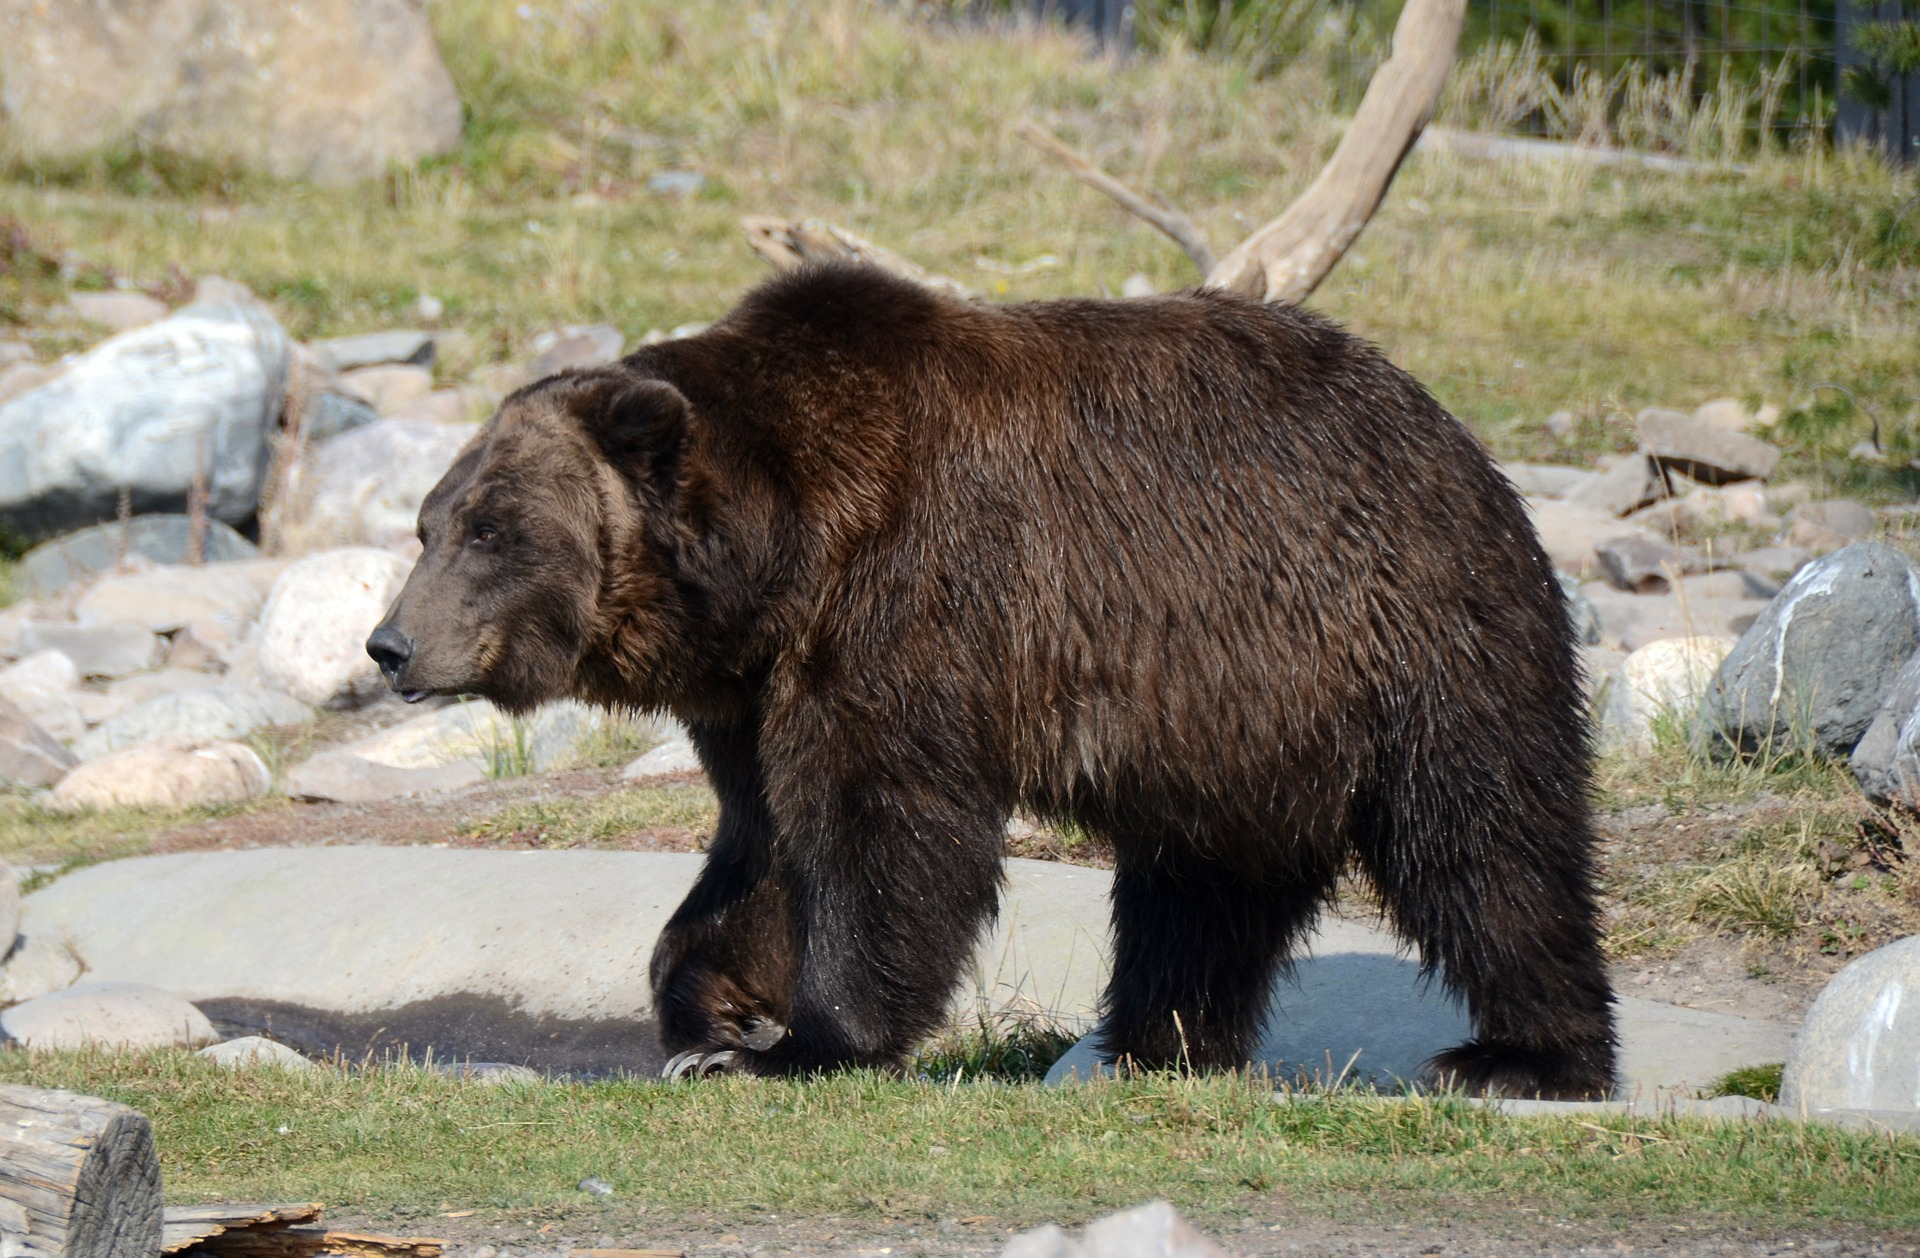 Bear Photos and Stock bear pictures - Niebrugge